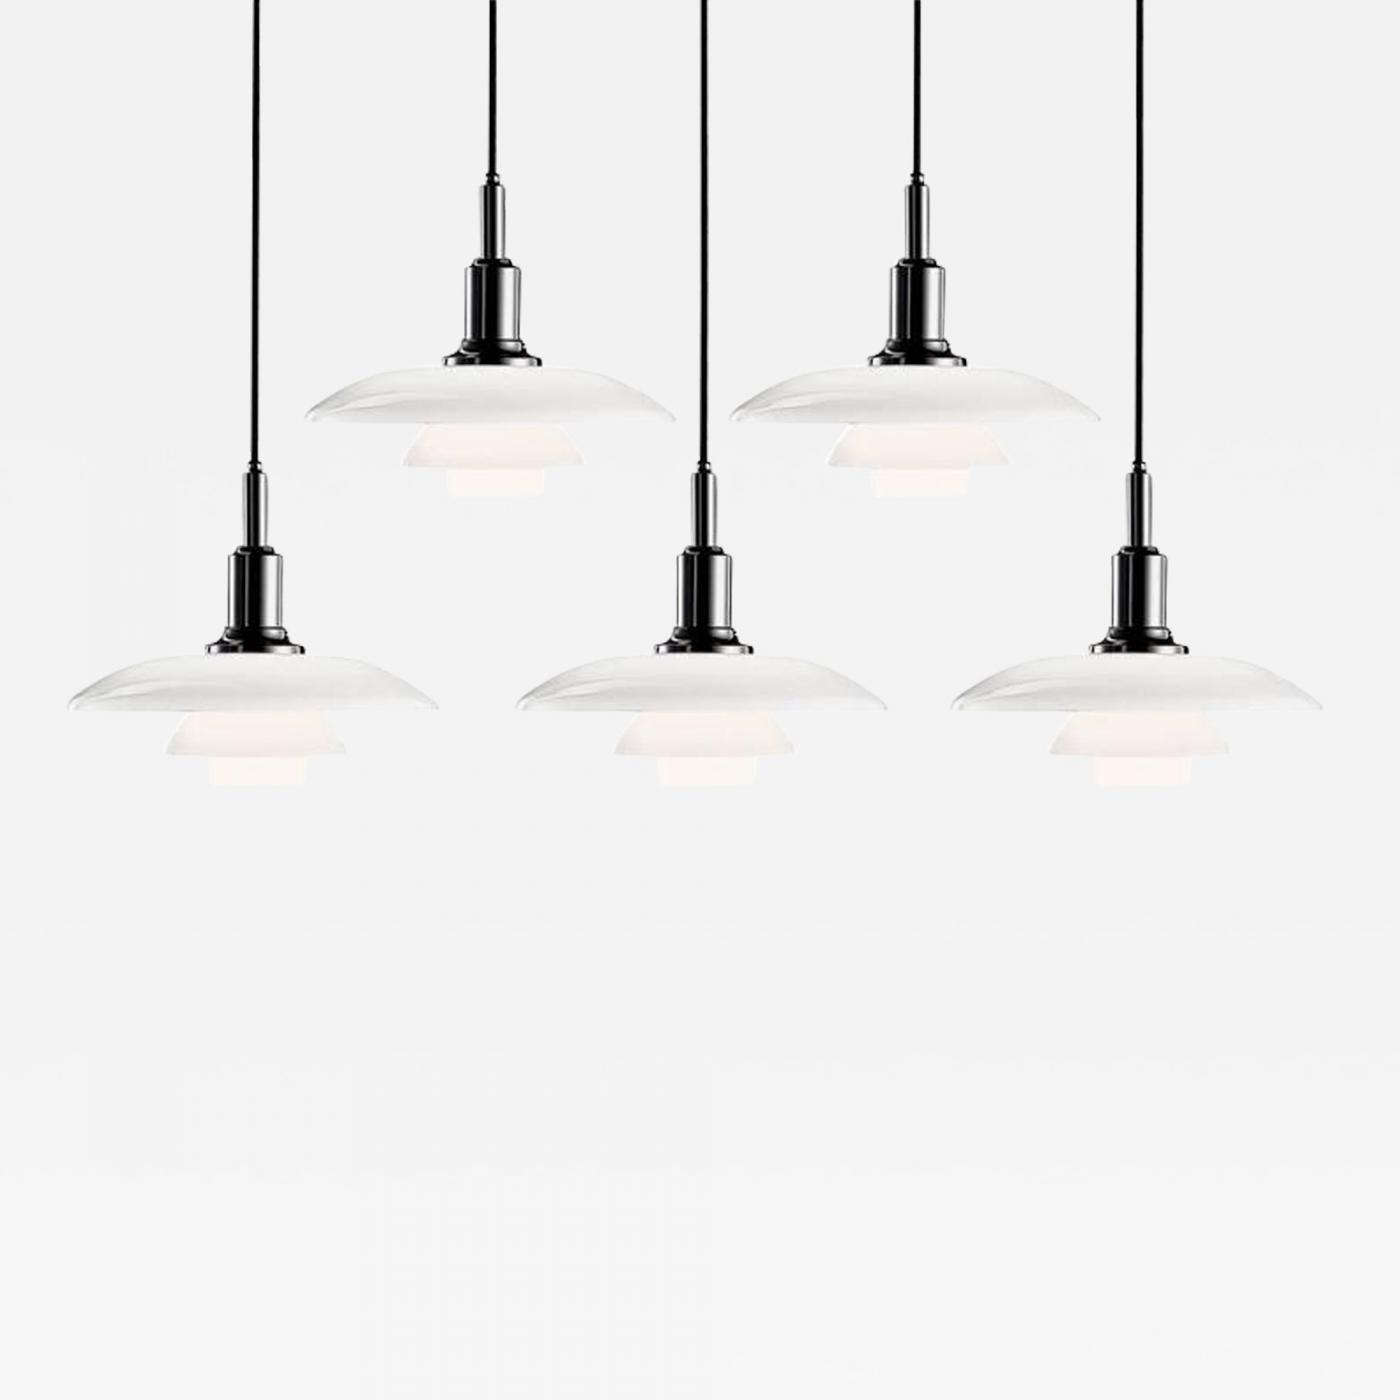 Louis Poulsen Ph 3 2 Poul Henningsen Poul Henningsen Ph 3 2 Glass Pendants For Louis Poulsen